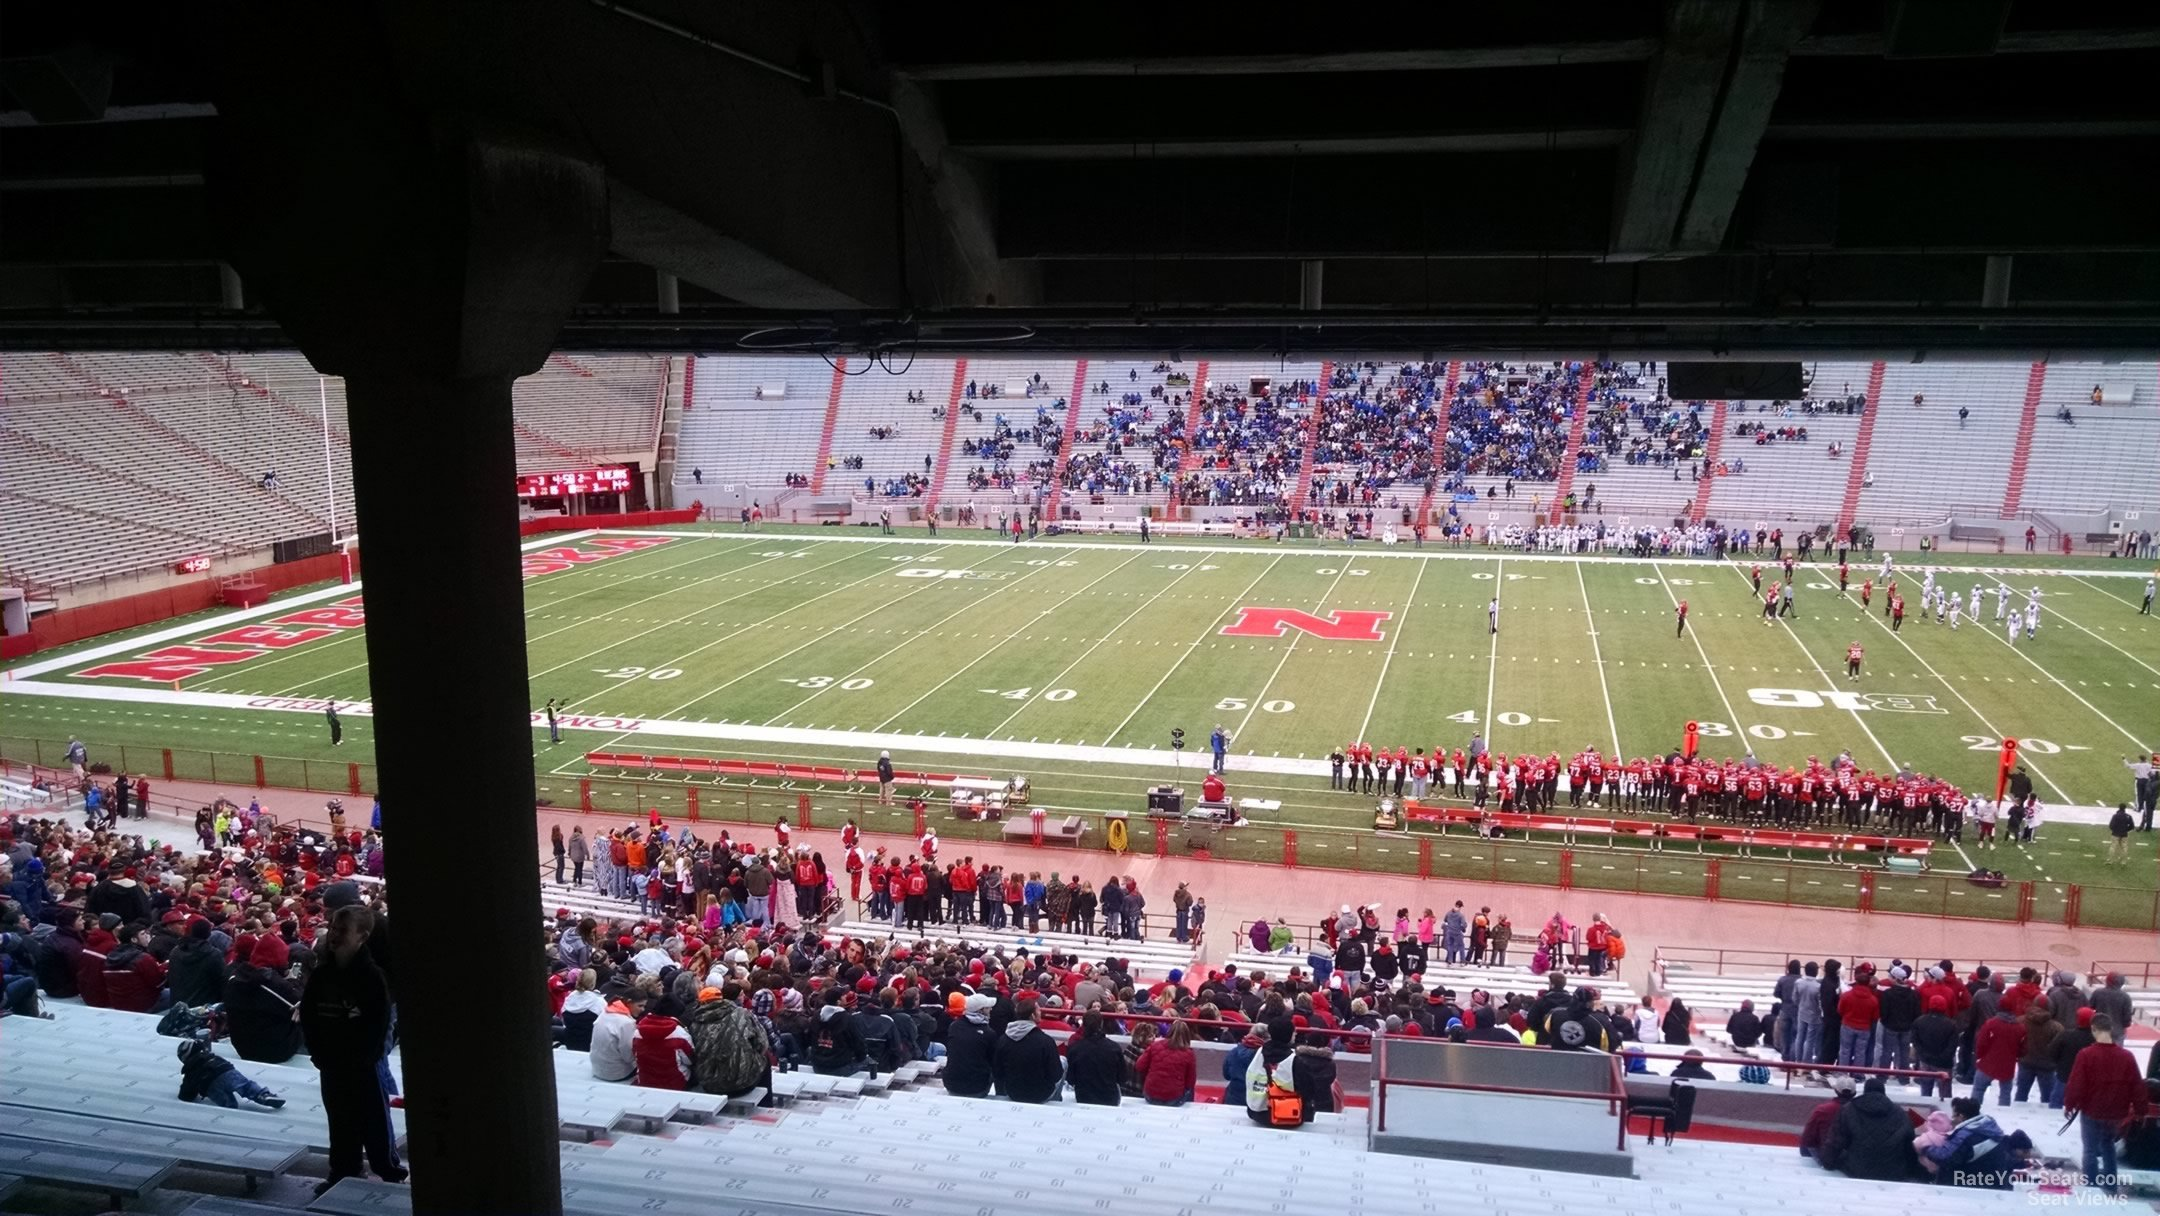 Are there view obstructions in Section 5 Row 42 at Memorial Stadium